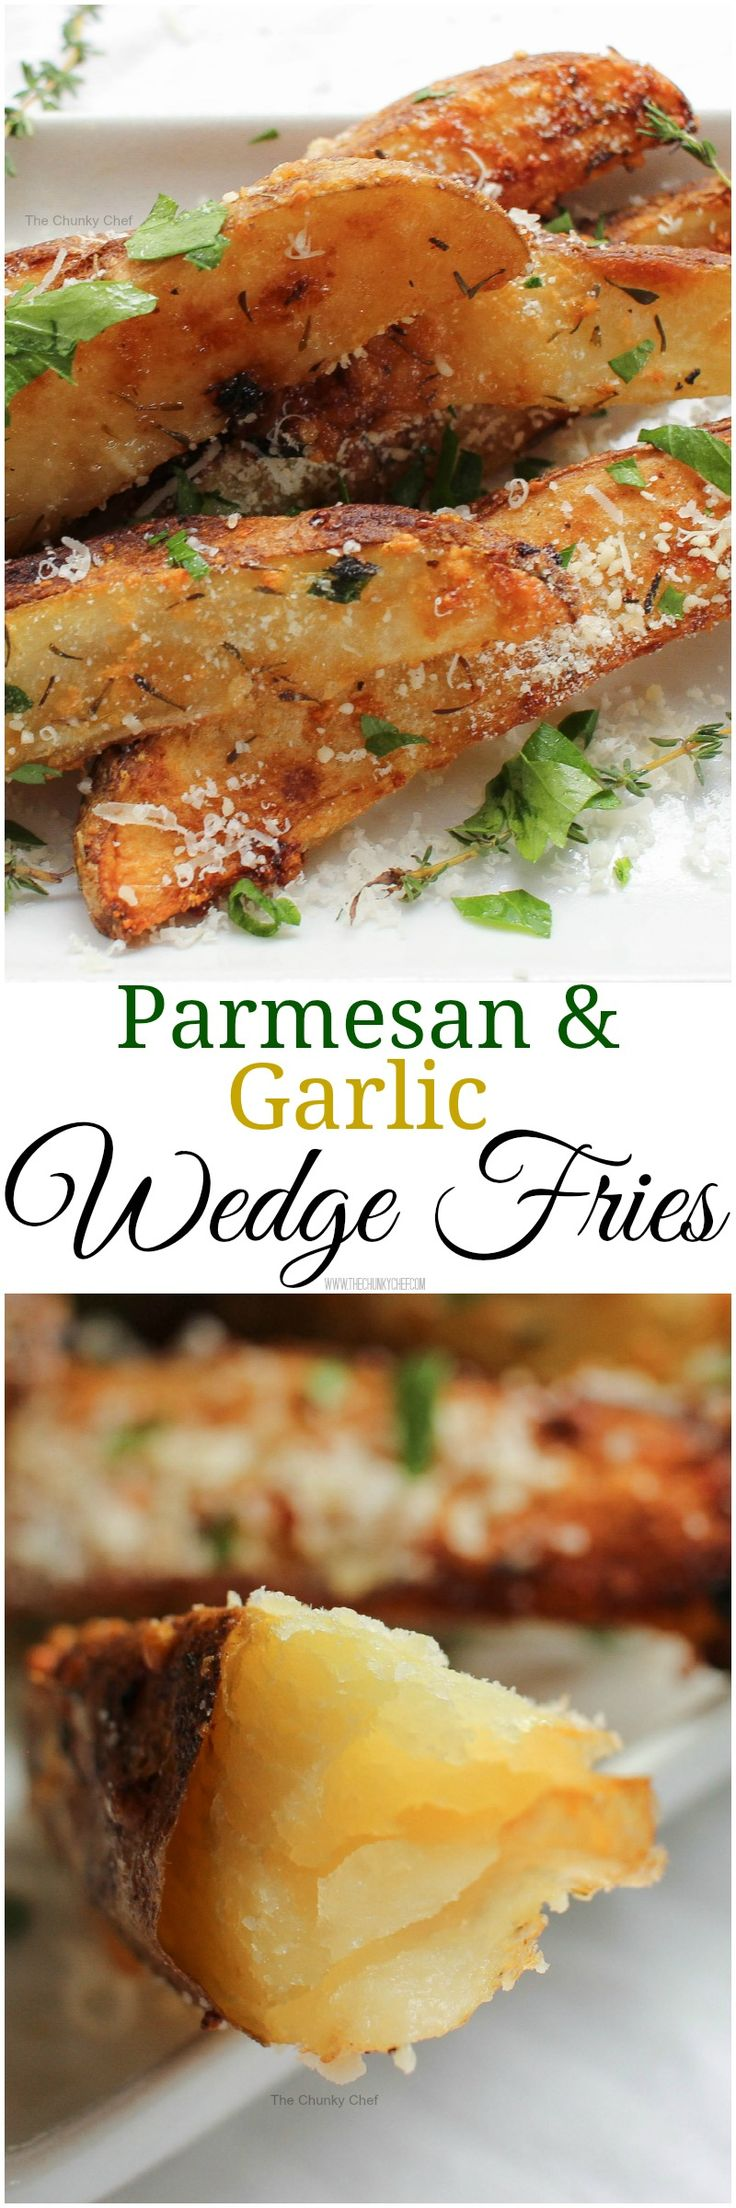 Parmesan & Garlic Wedge Fries